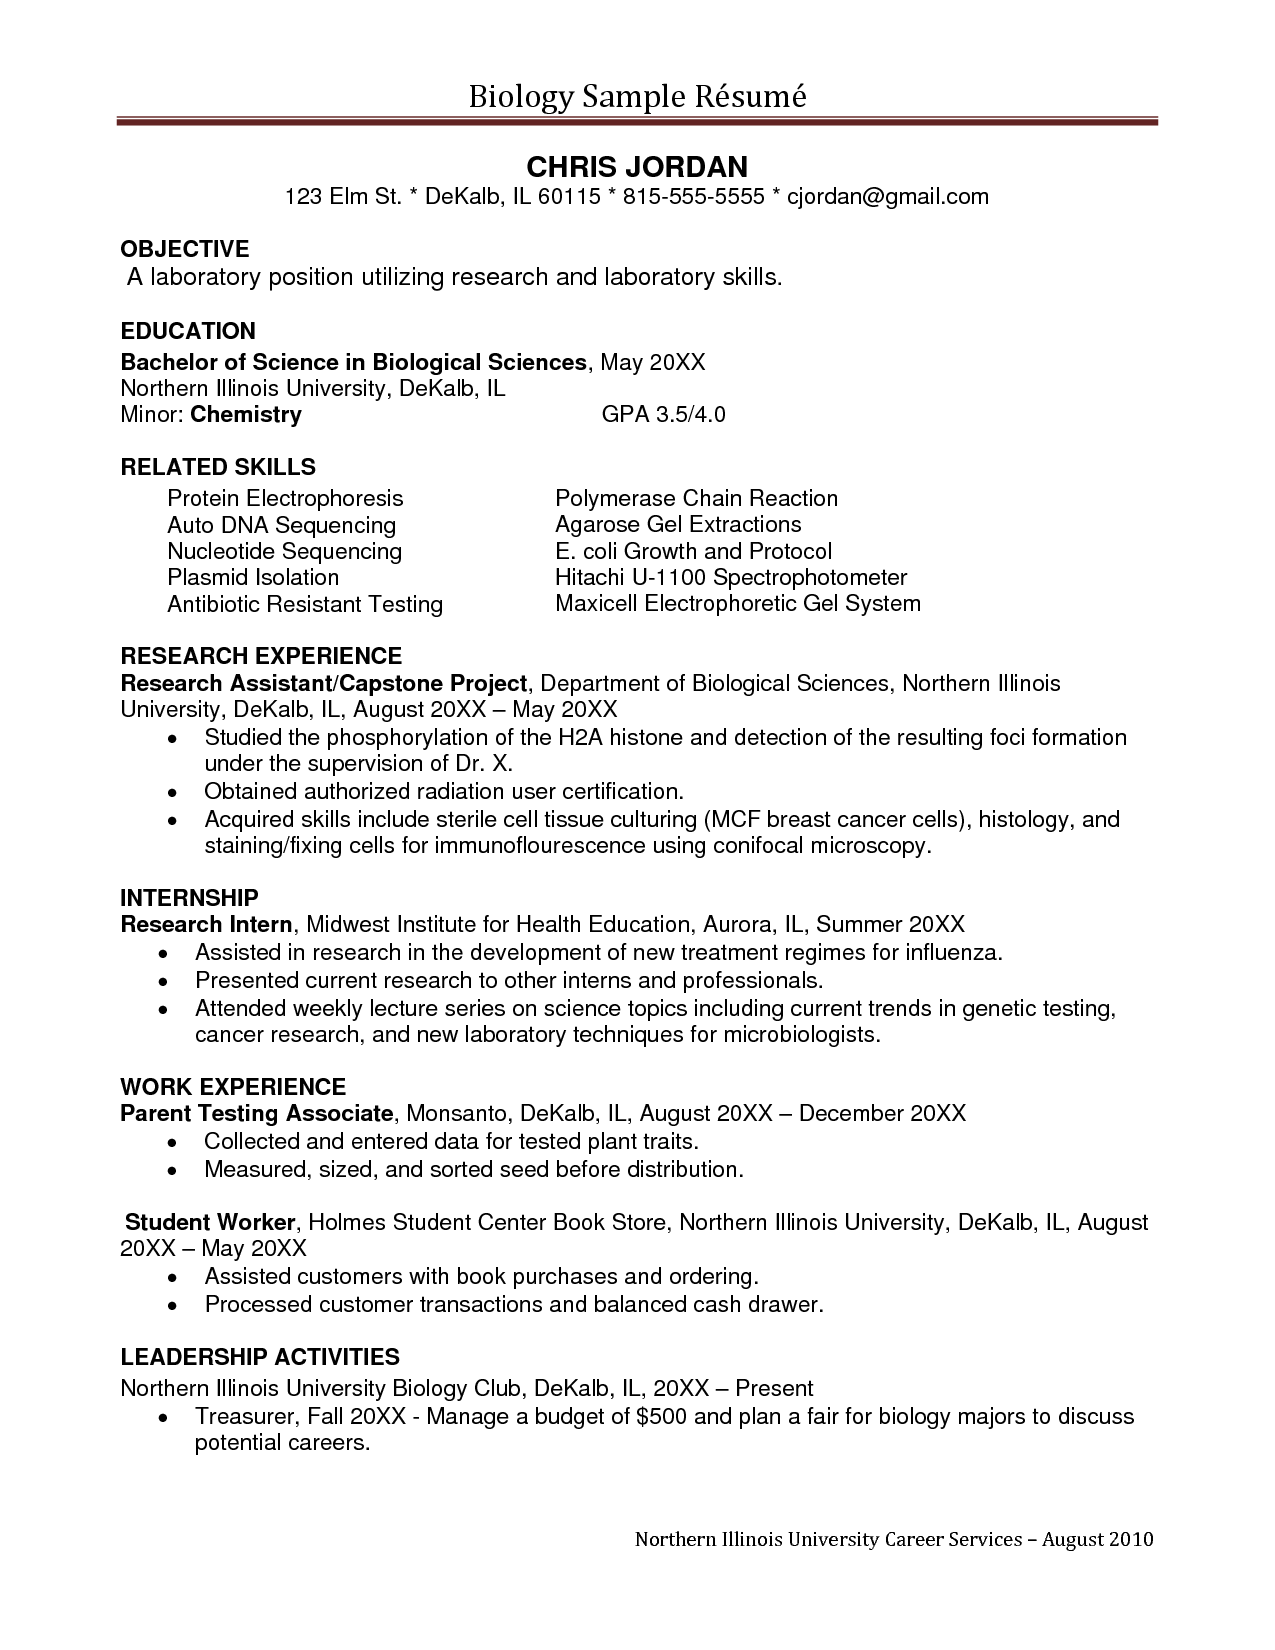 Samples Of Resume Objectives Sample Undergraduate Research Assistant Resume Sampleĺ